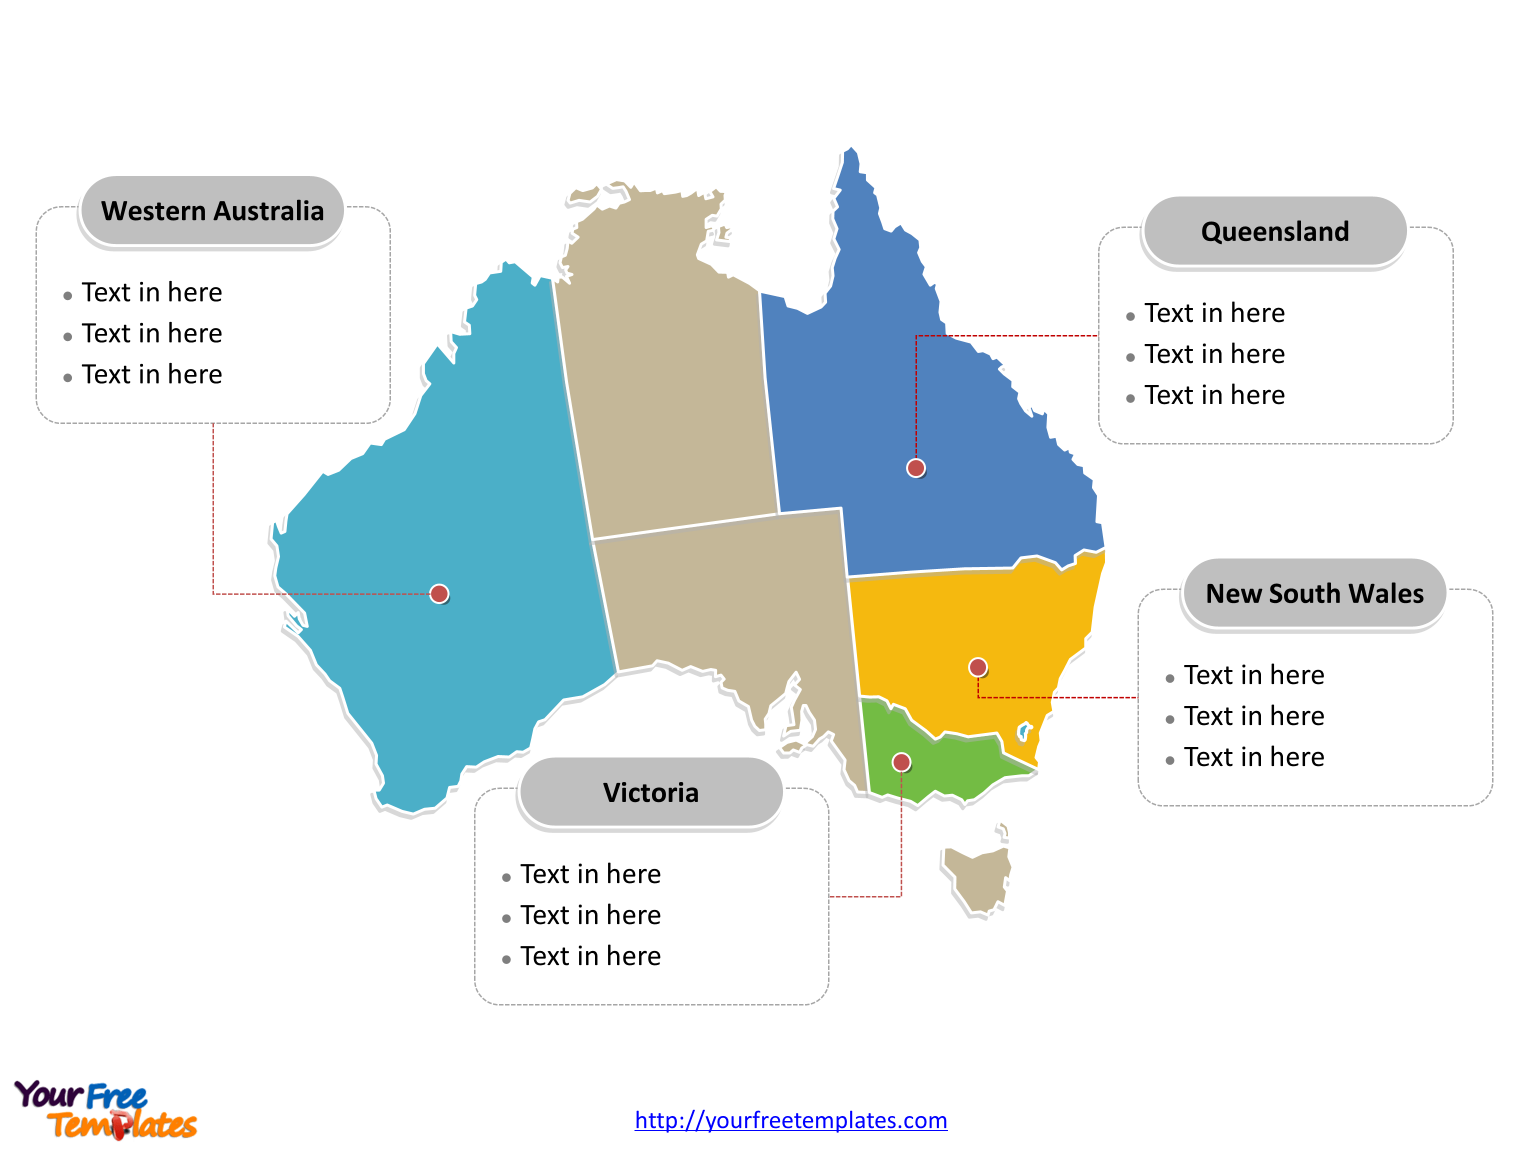 Australia Editable map labeled with major states